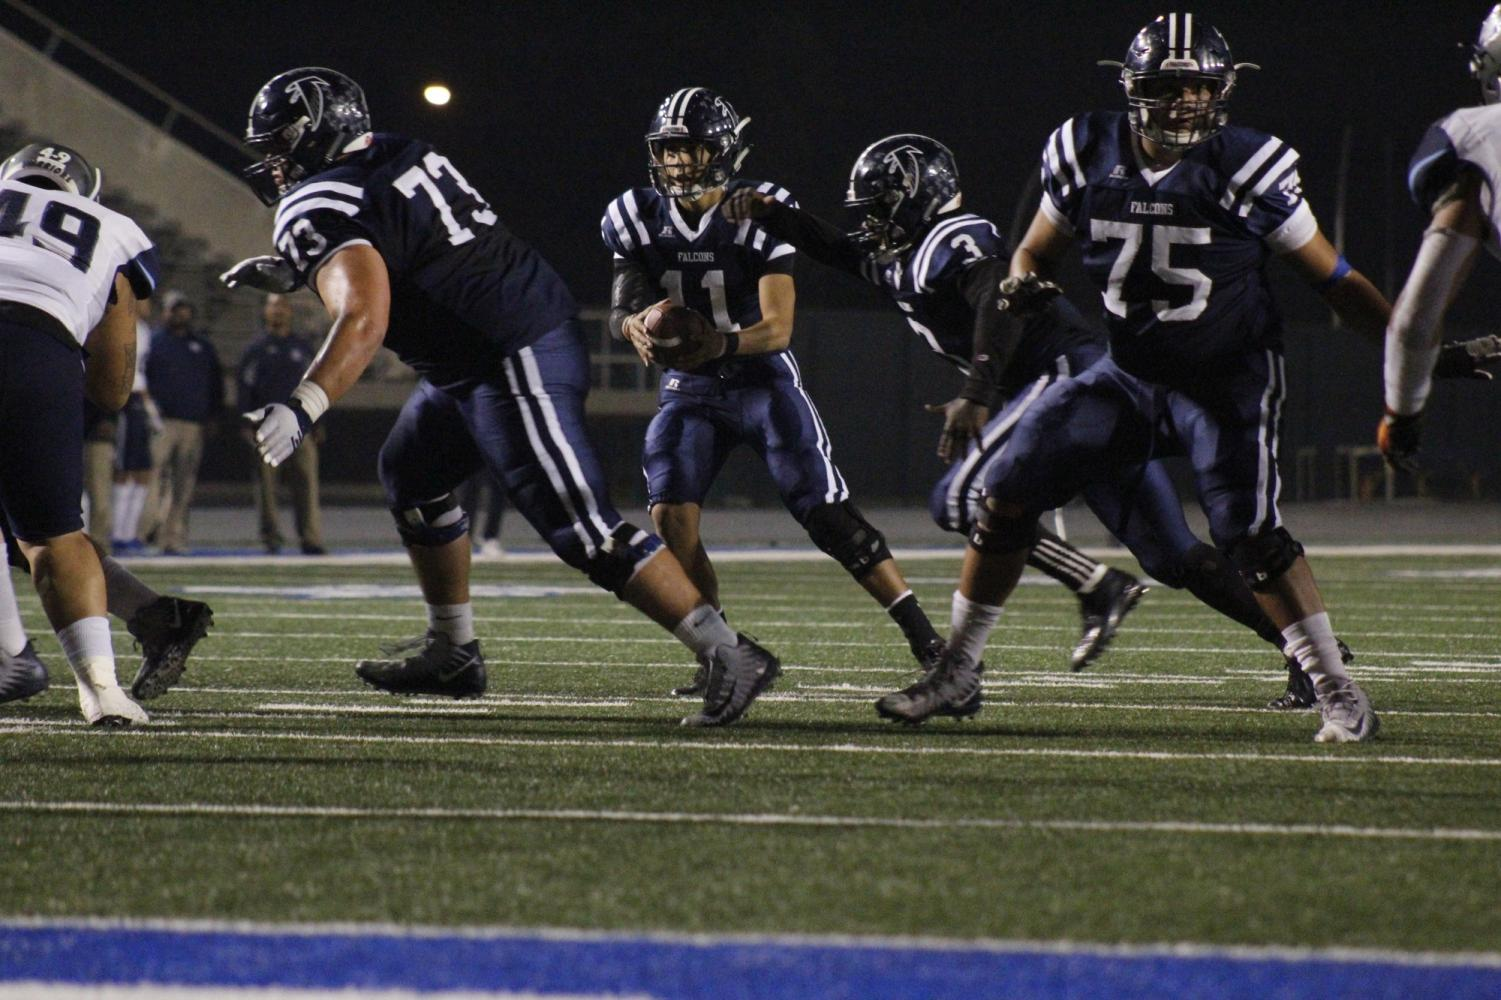 ef090e7a0 Costly turnovers against El Camino College ruin Falcons  playoff hopes